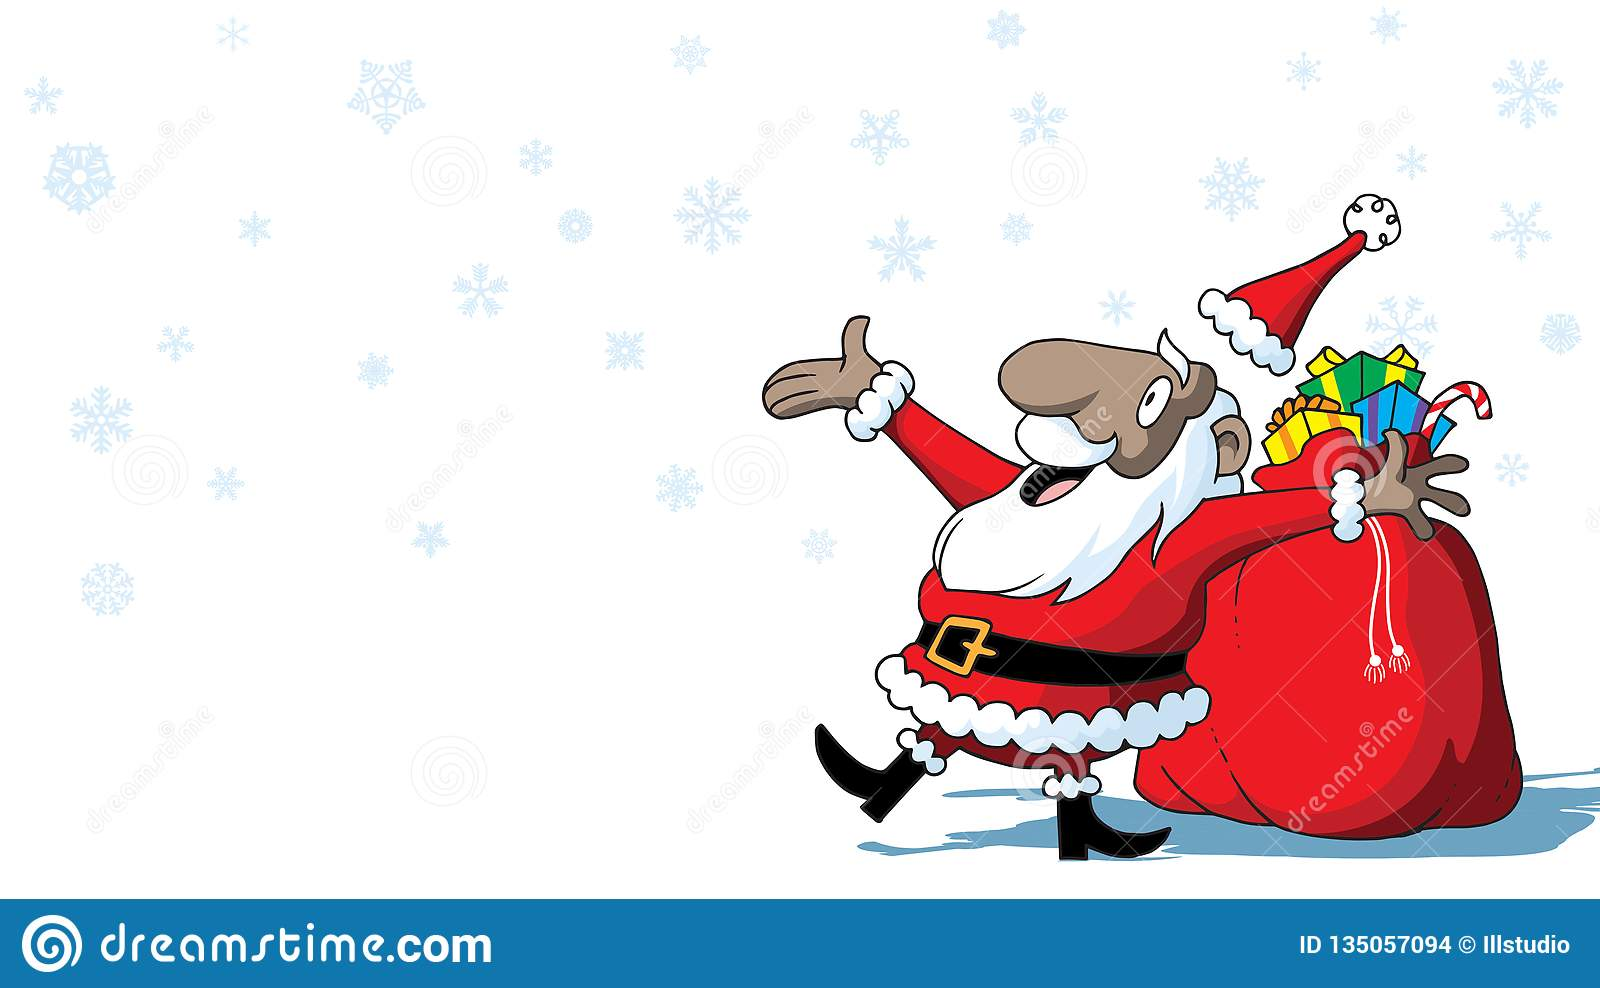 Merry Christmas African American Santa Claus With Toys On White Background With Snowflakes Stock Illustration Illustration Of Holiday Claus 135057094